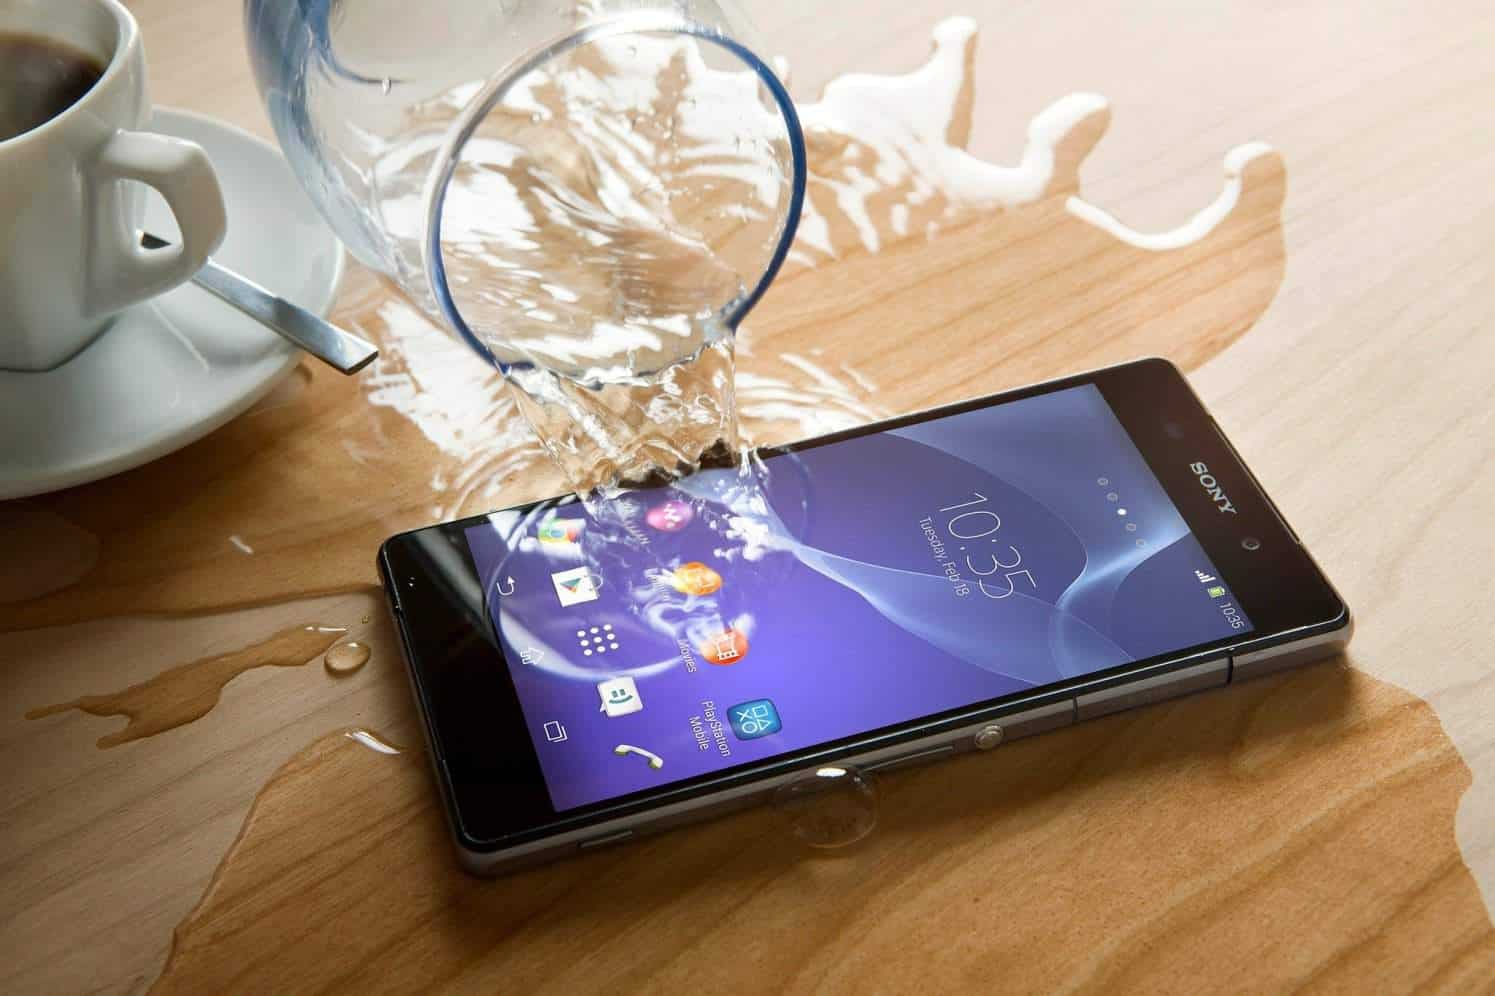 Sony water-proof technology